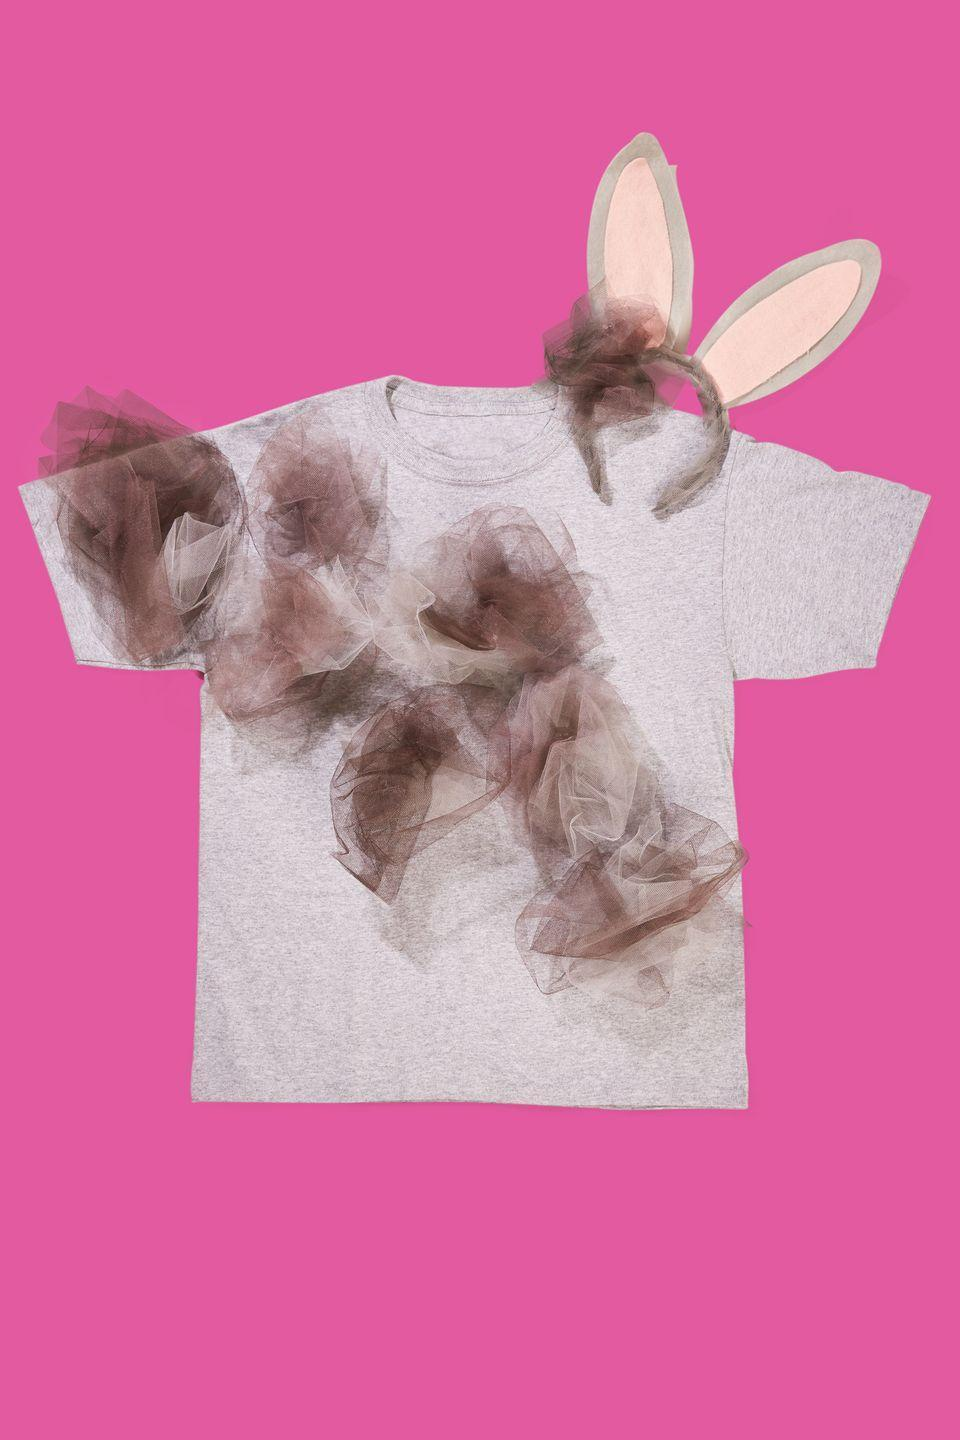 """<p>This clever costume can be whipped up with a healthy supply of brown-and-gray, a gray t-shirt, and some <span class=""""redactor-unlink"""">bunny ears</span>. Bunch up the tulle into tufts, then glue them onto the t-shirt with hot glue. </p><p><strong><a class=""""link rapid-noclick-resp"""" href=""""https://www.amazon.com/Jacobson-Hat-Company-Headband-Fluffy/dp/B00ODBIEJG/?tag=syn-yahoo-20&ascsubtag=%5Bartid%7C10070.g.490%5Bsrc%7Cyahoo-us"""" rel=""""nofollow noopener"""" target=""""_blank"""" data-ylk=""""slk:SHOP BUNNY EARS"""">SHOP BUNNY EARS</a></strong></p>"""